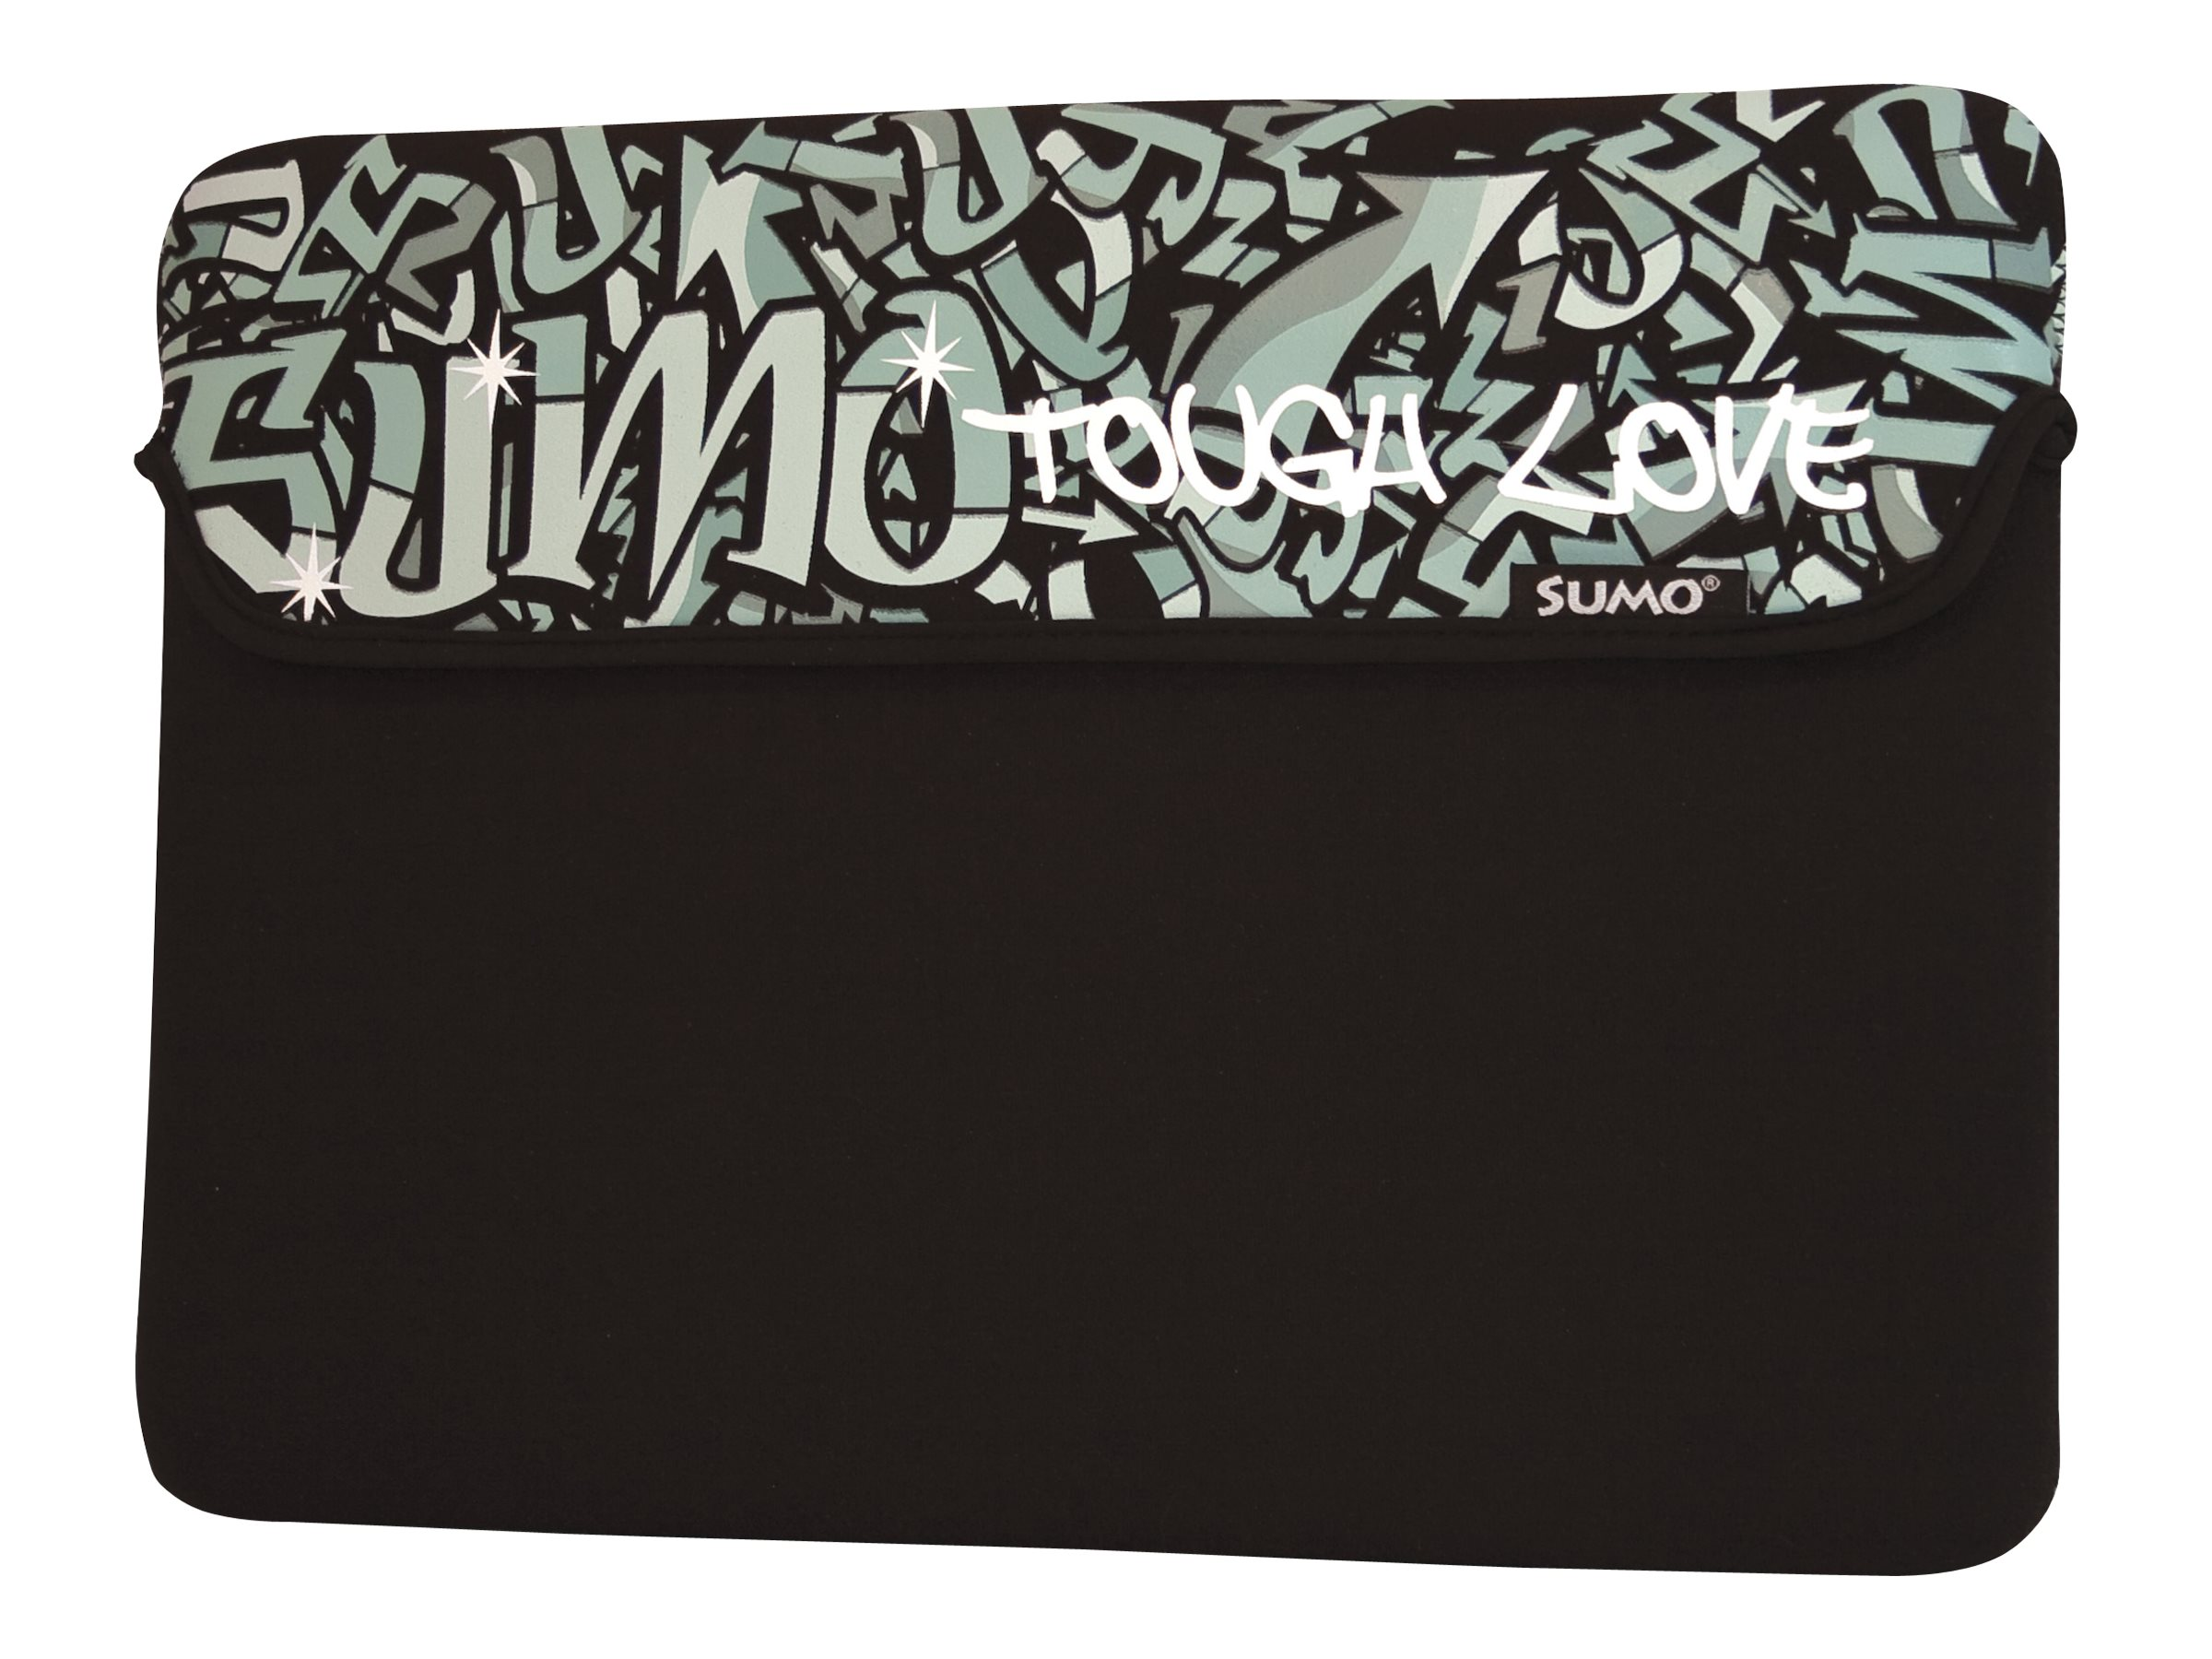 Mobile Edge Sumo Graffiti iPad Sleeve, Black, SUMO-IPADSG1, 11634607, Protective & Dust Covers